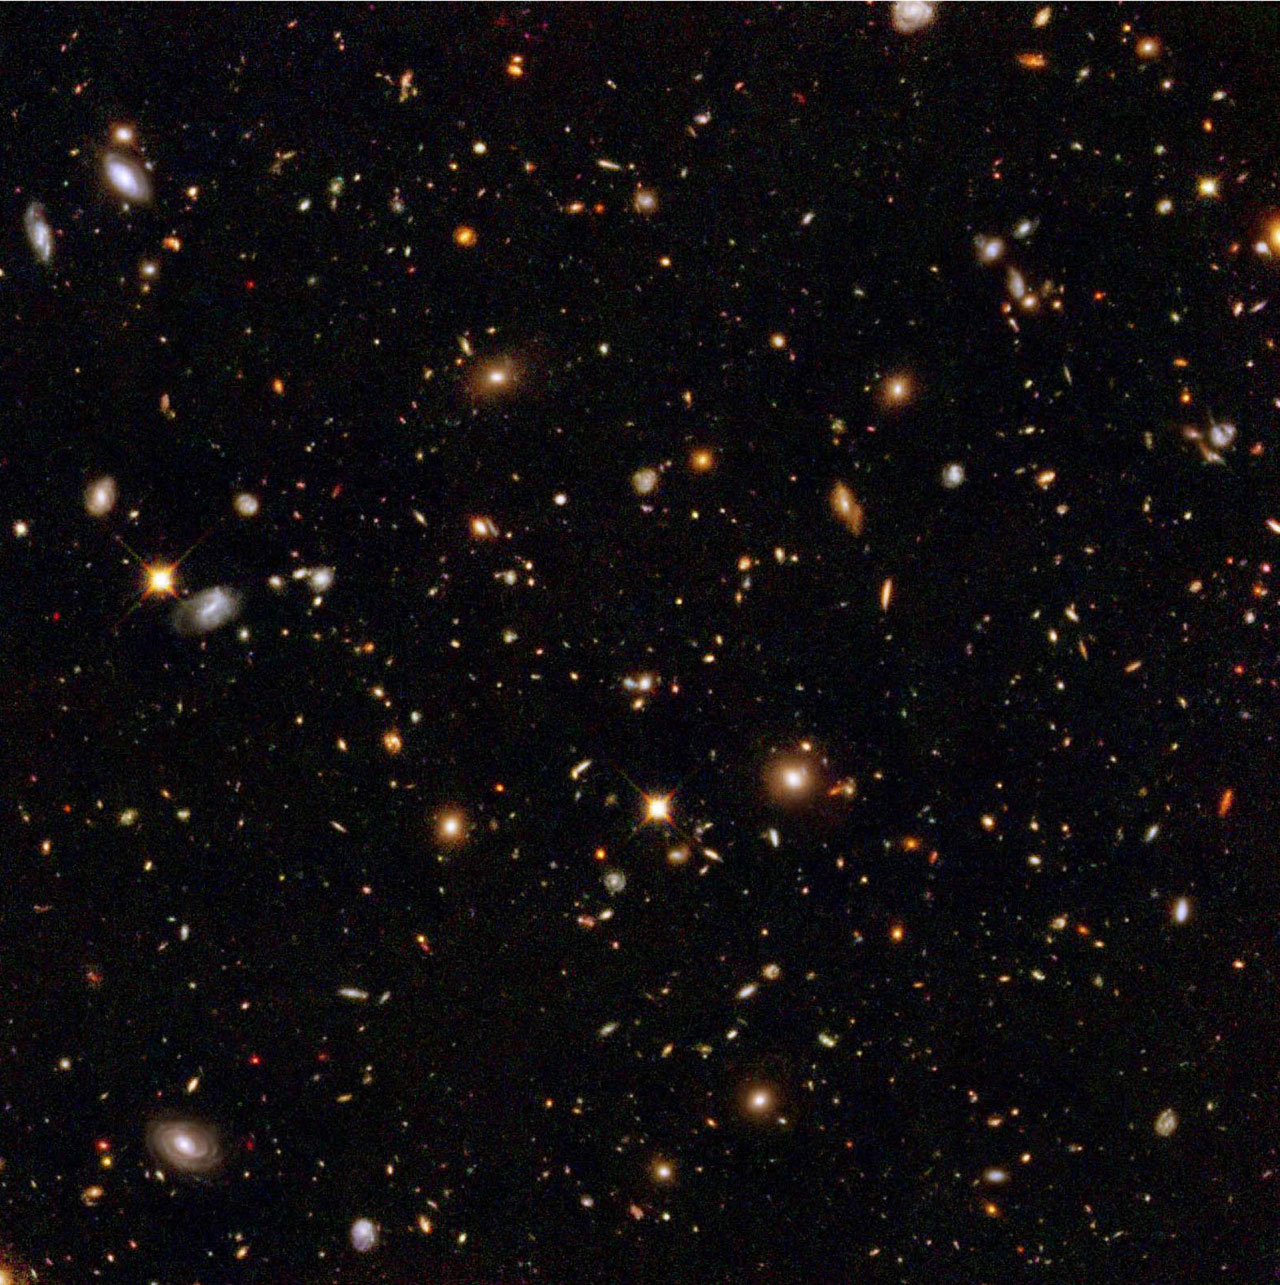 NASA - Hubble Digs Deeply, Toward Big Bang